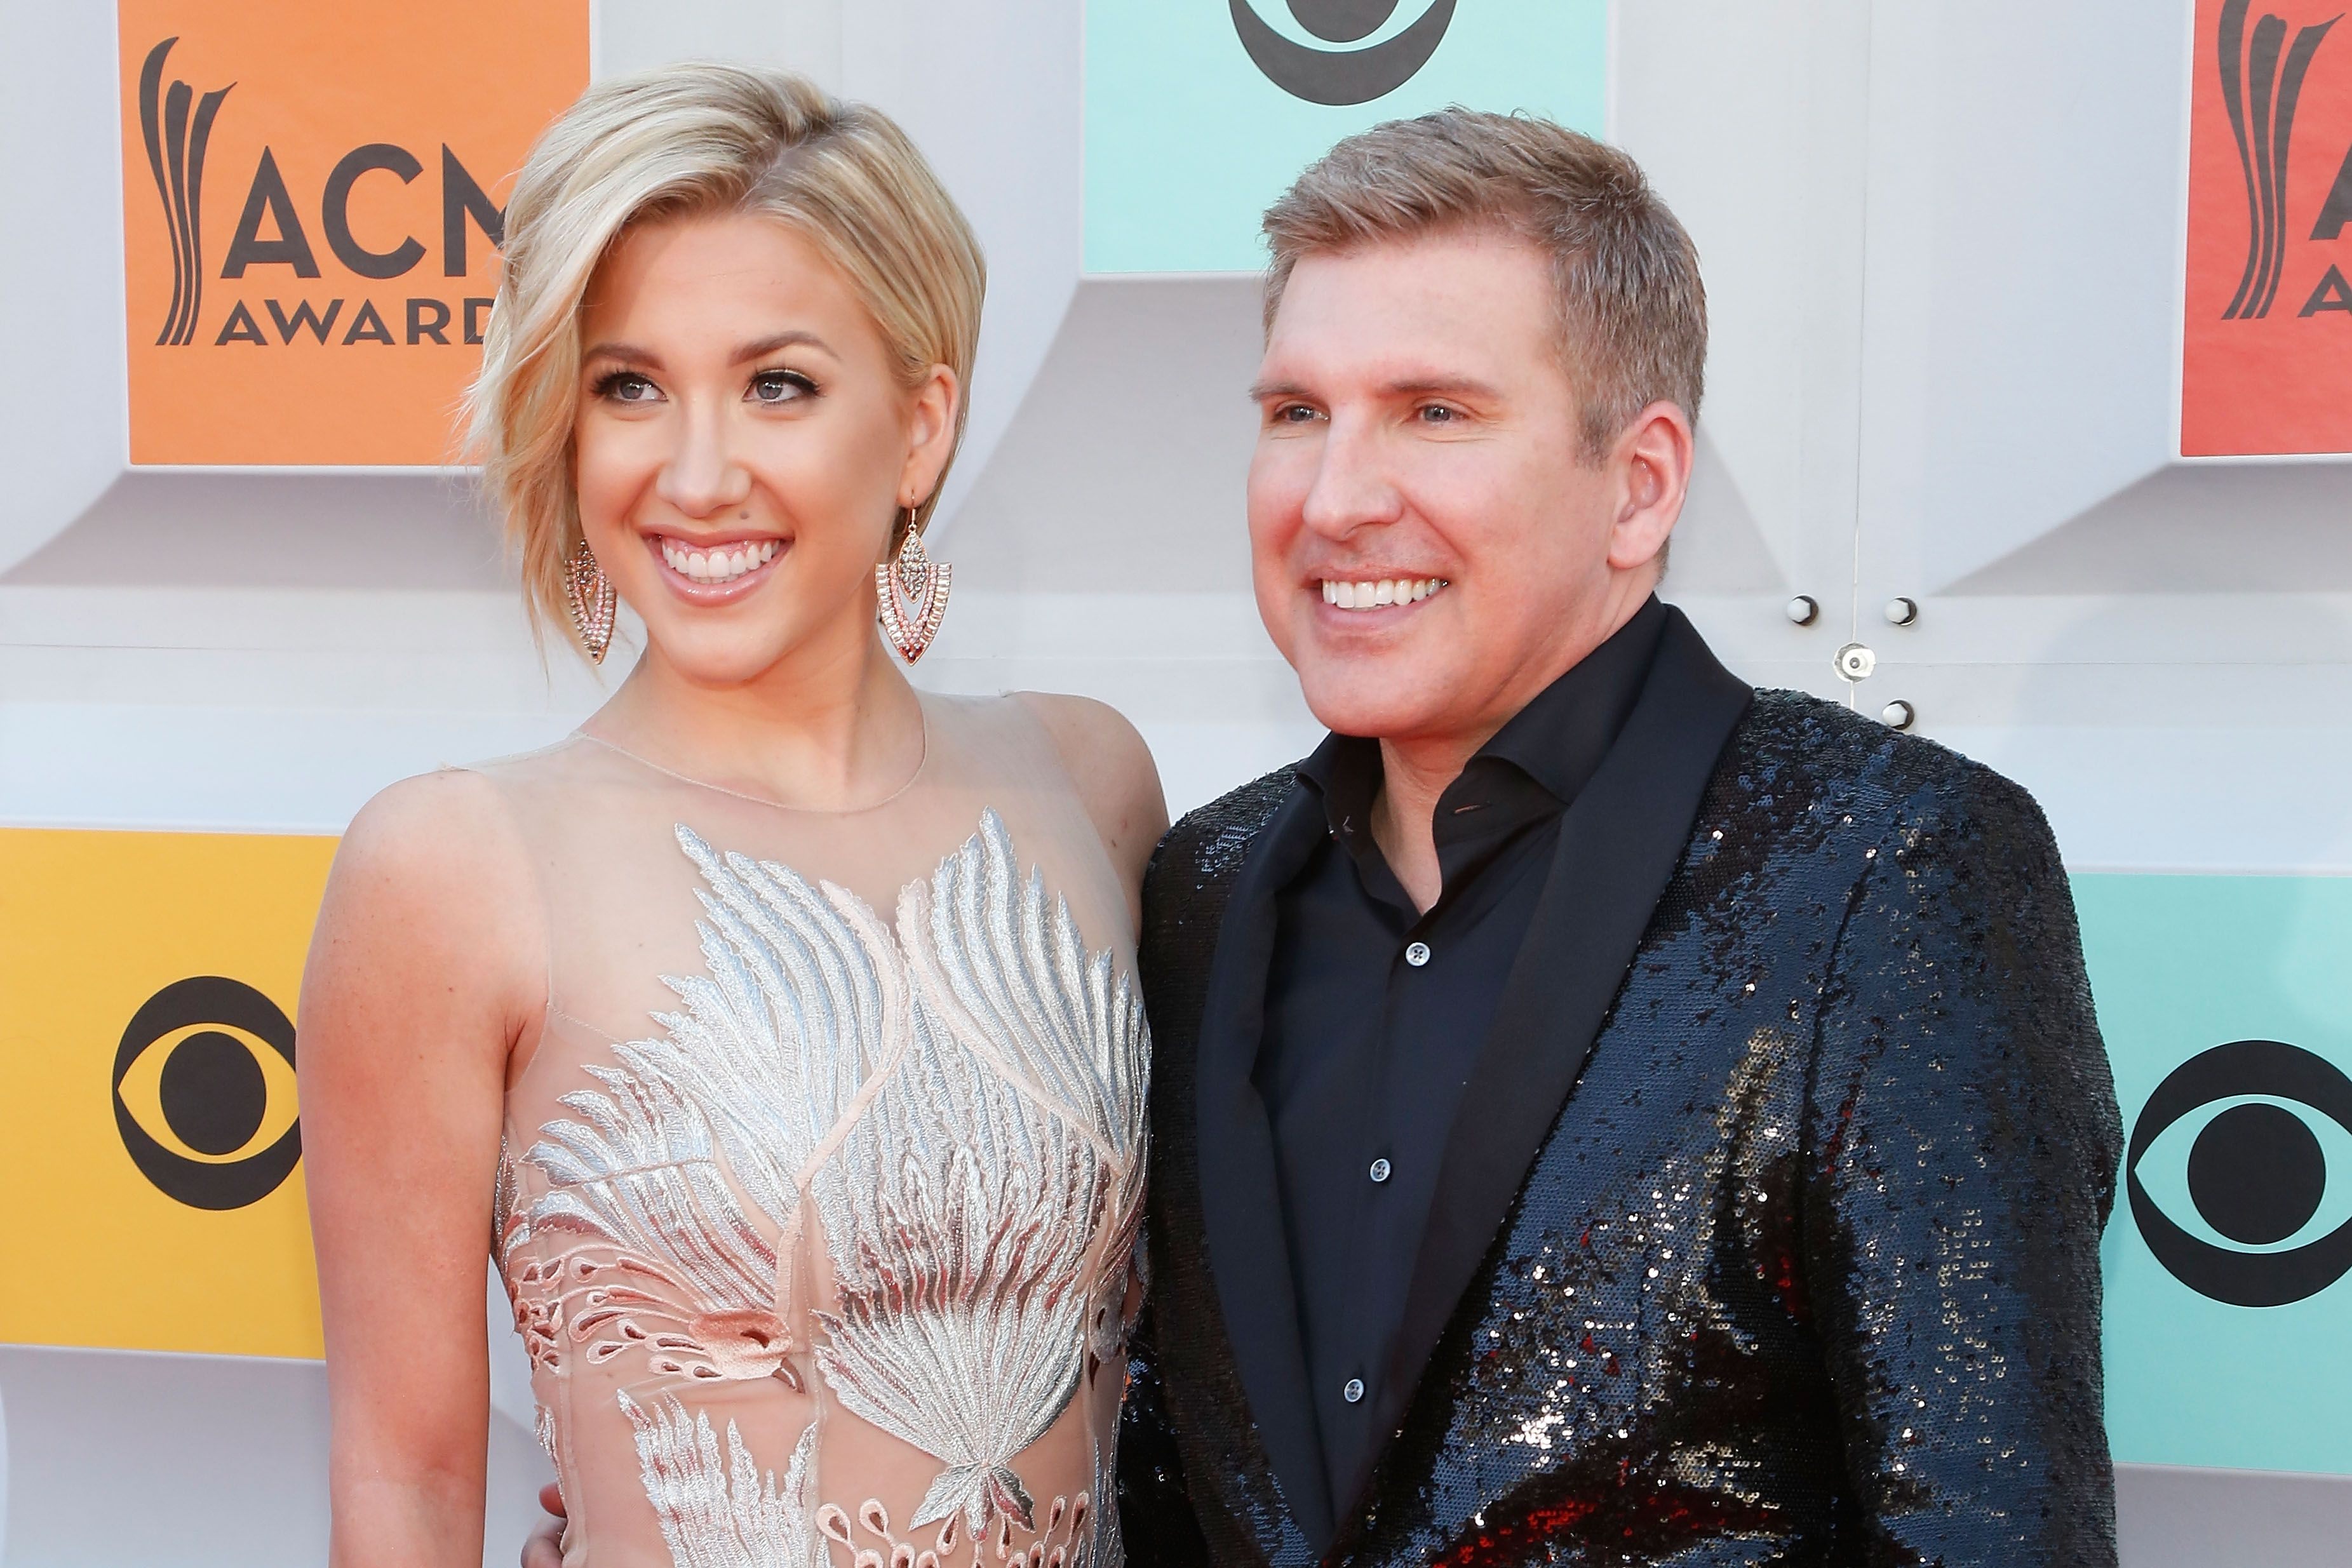 Savannah Chrisley and Todd Chrisley during the 51st Academy of Country Music Awards at MGM Grand Garden Arena on April 3, 2016 in Las Vegas, Nevada.   Source: Getty Images